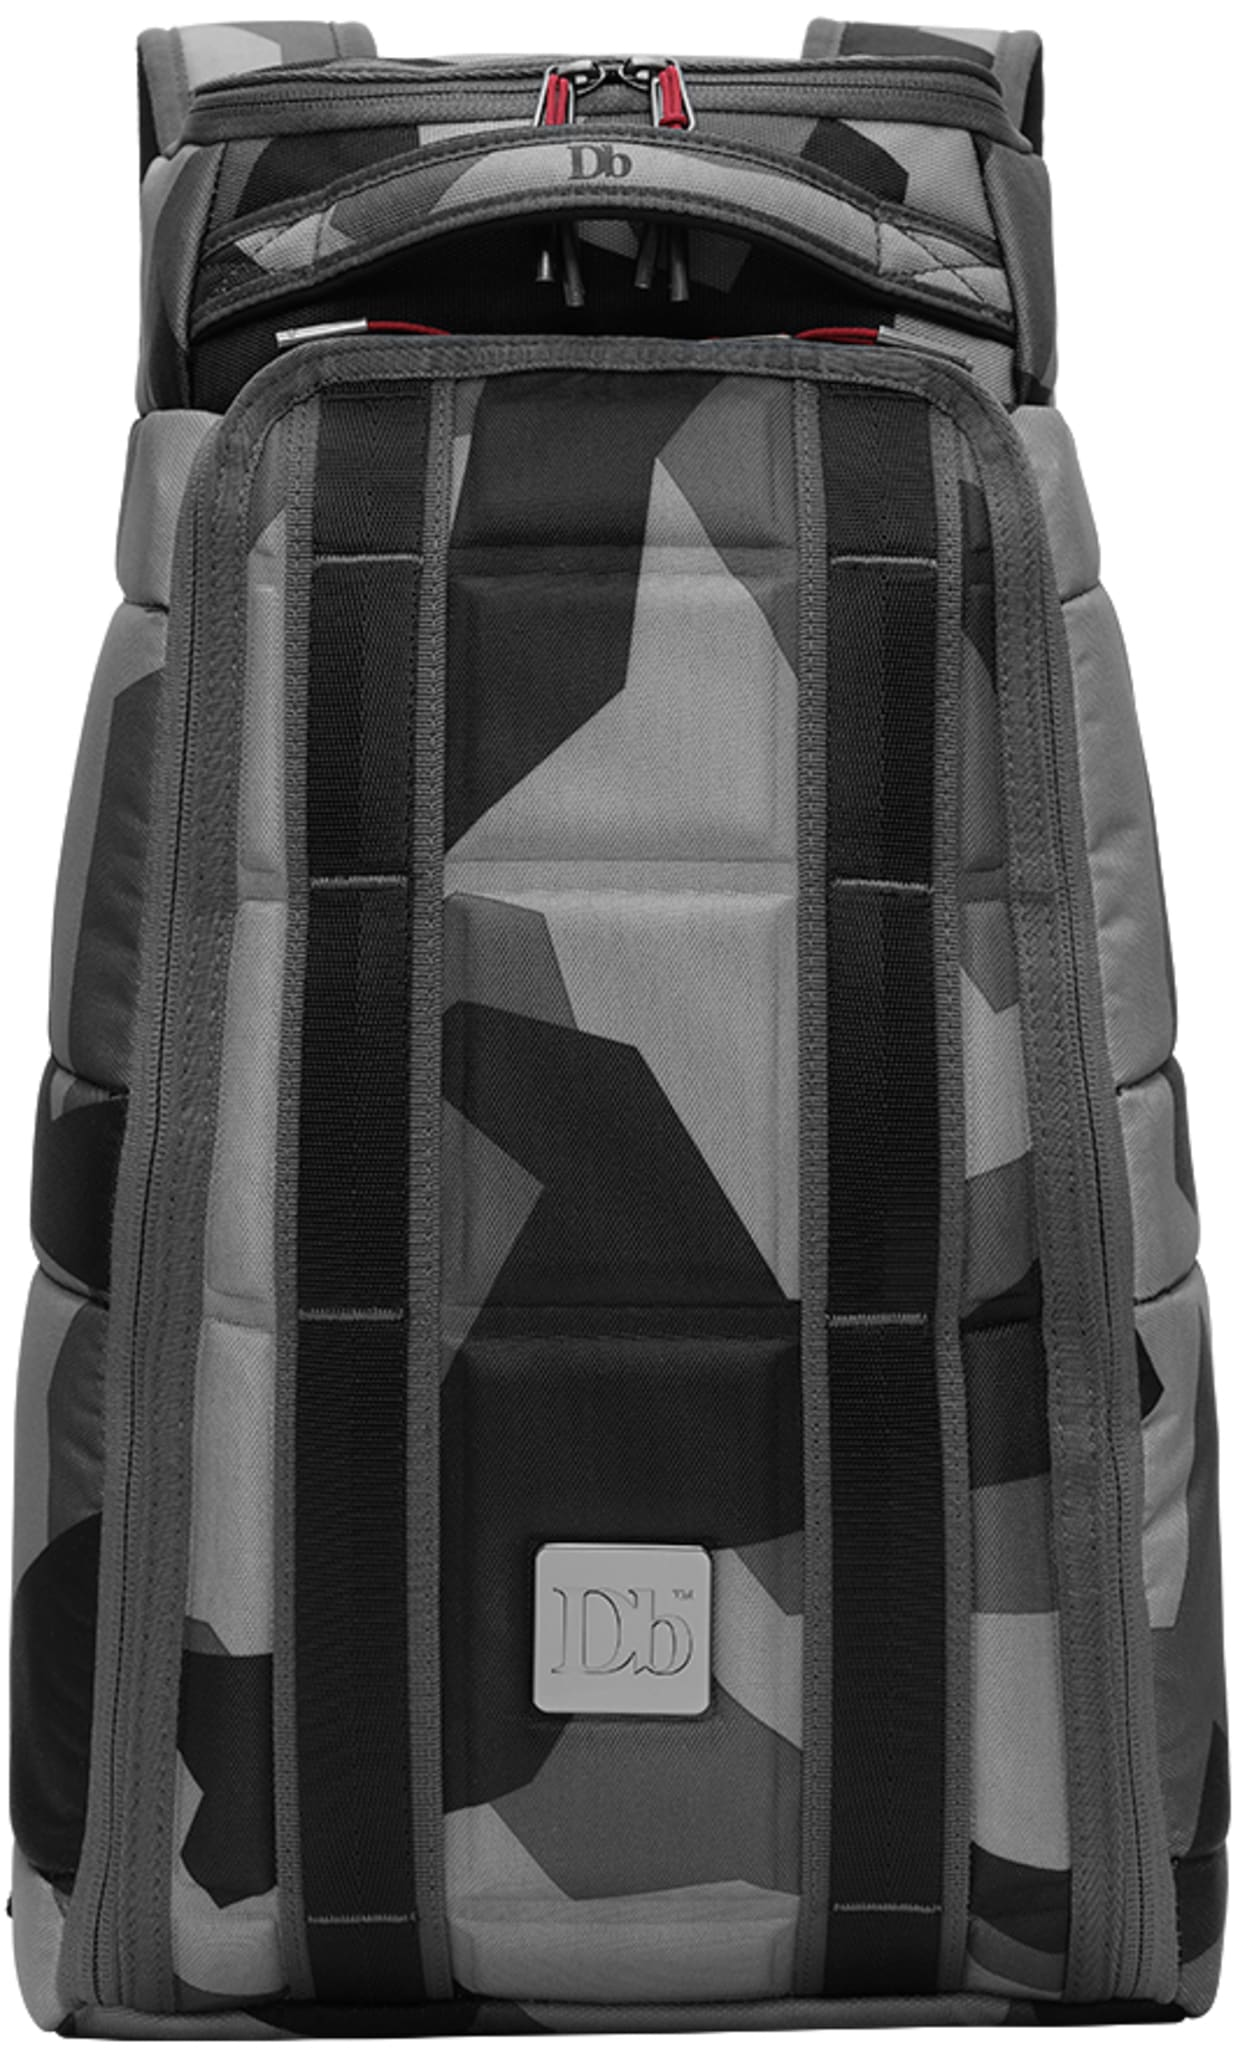 The Hugger 20L - Camo Limited Edition